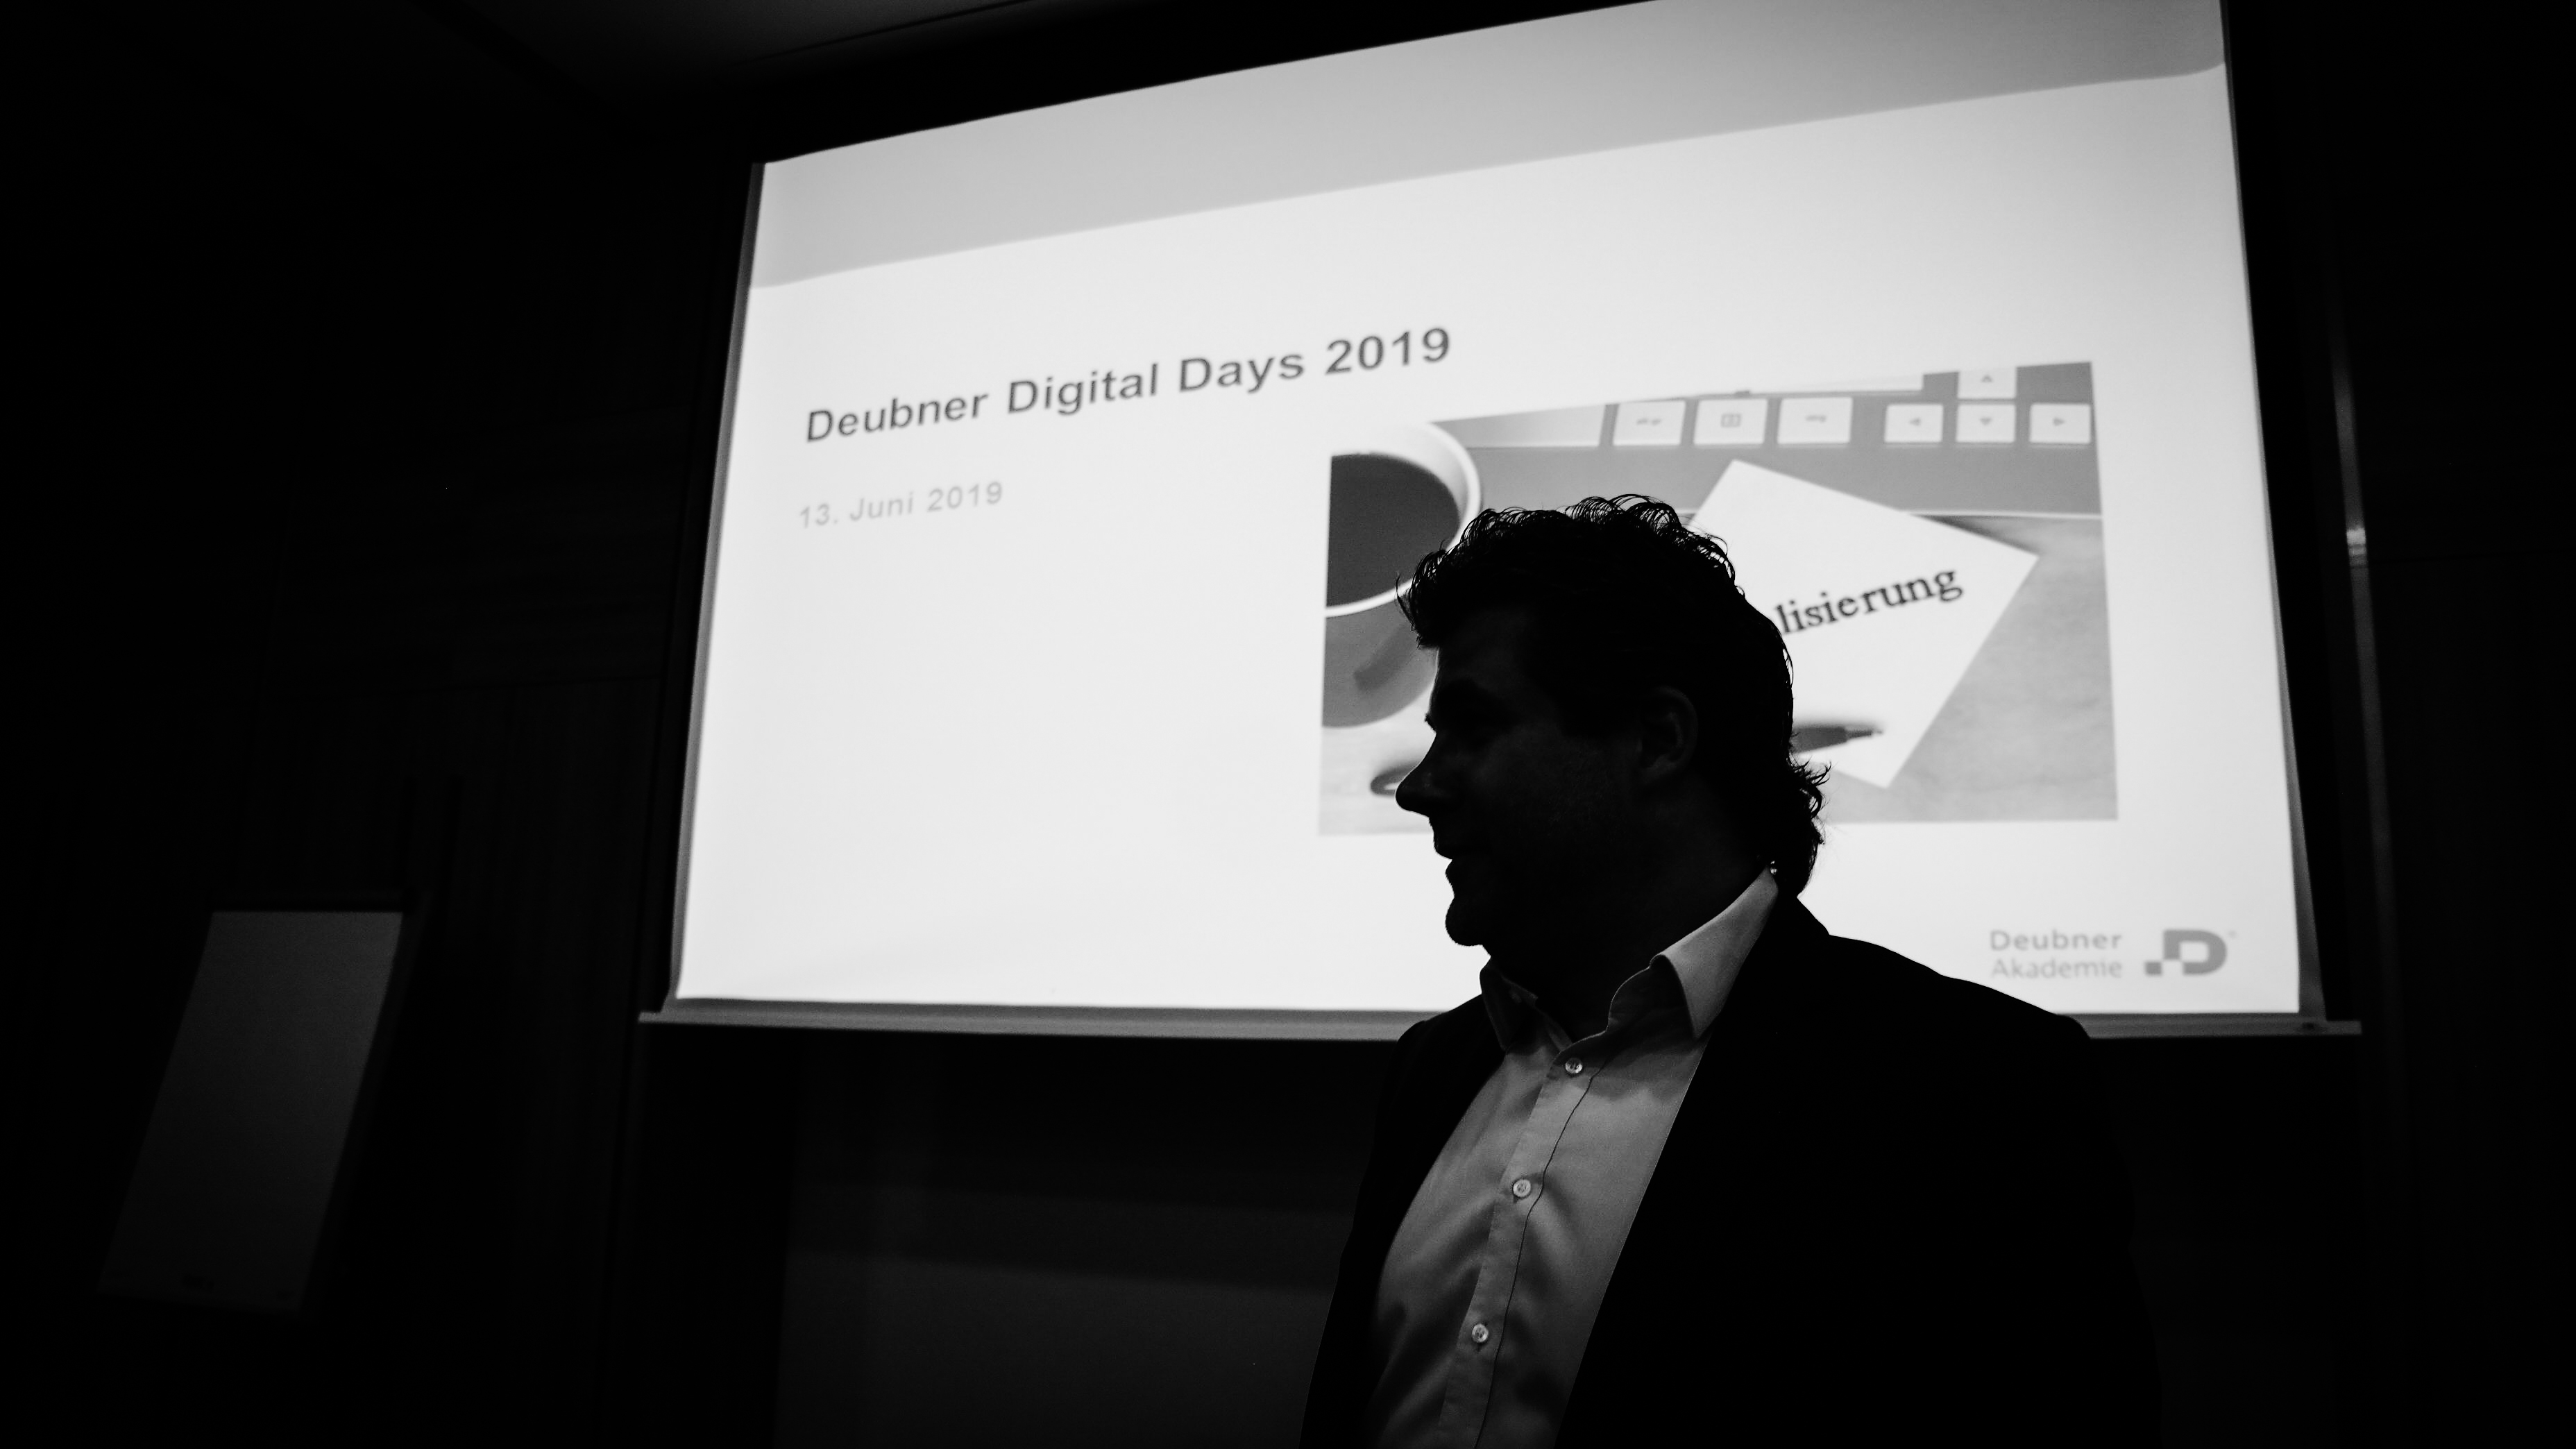 Wewers referiert auf den Deubner Digital Days